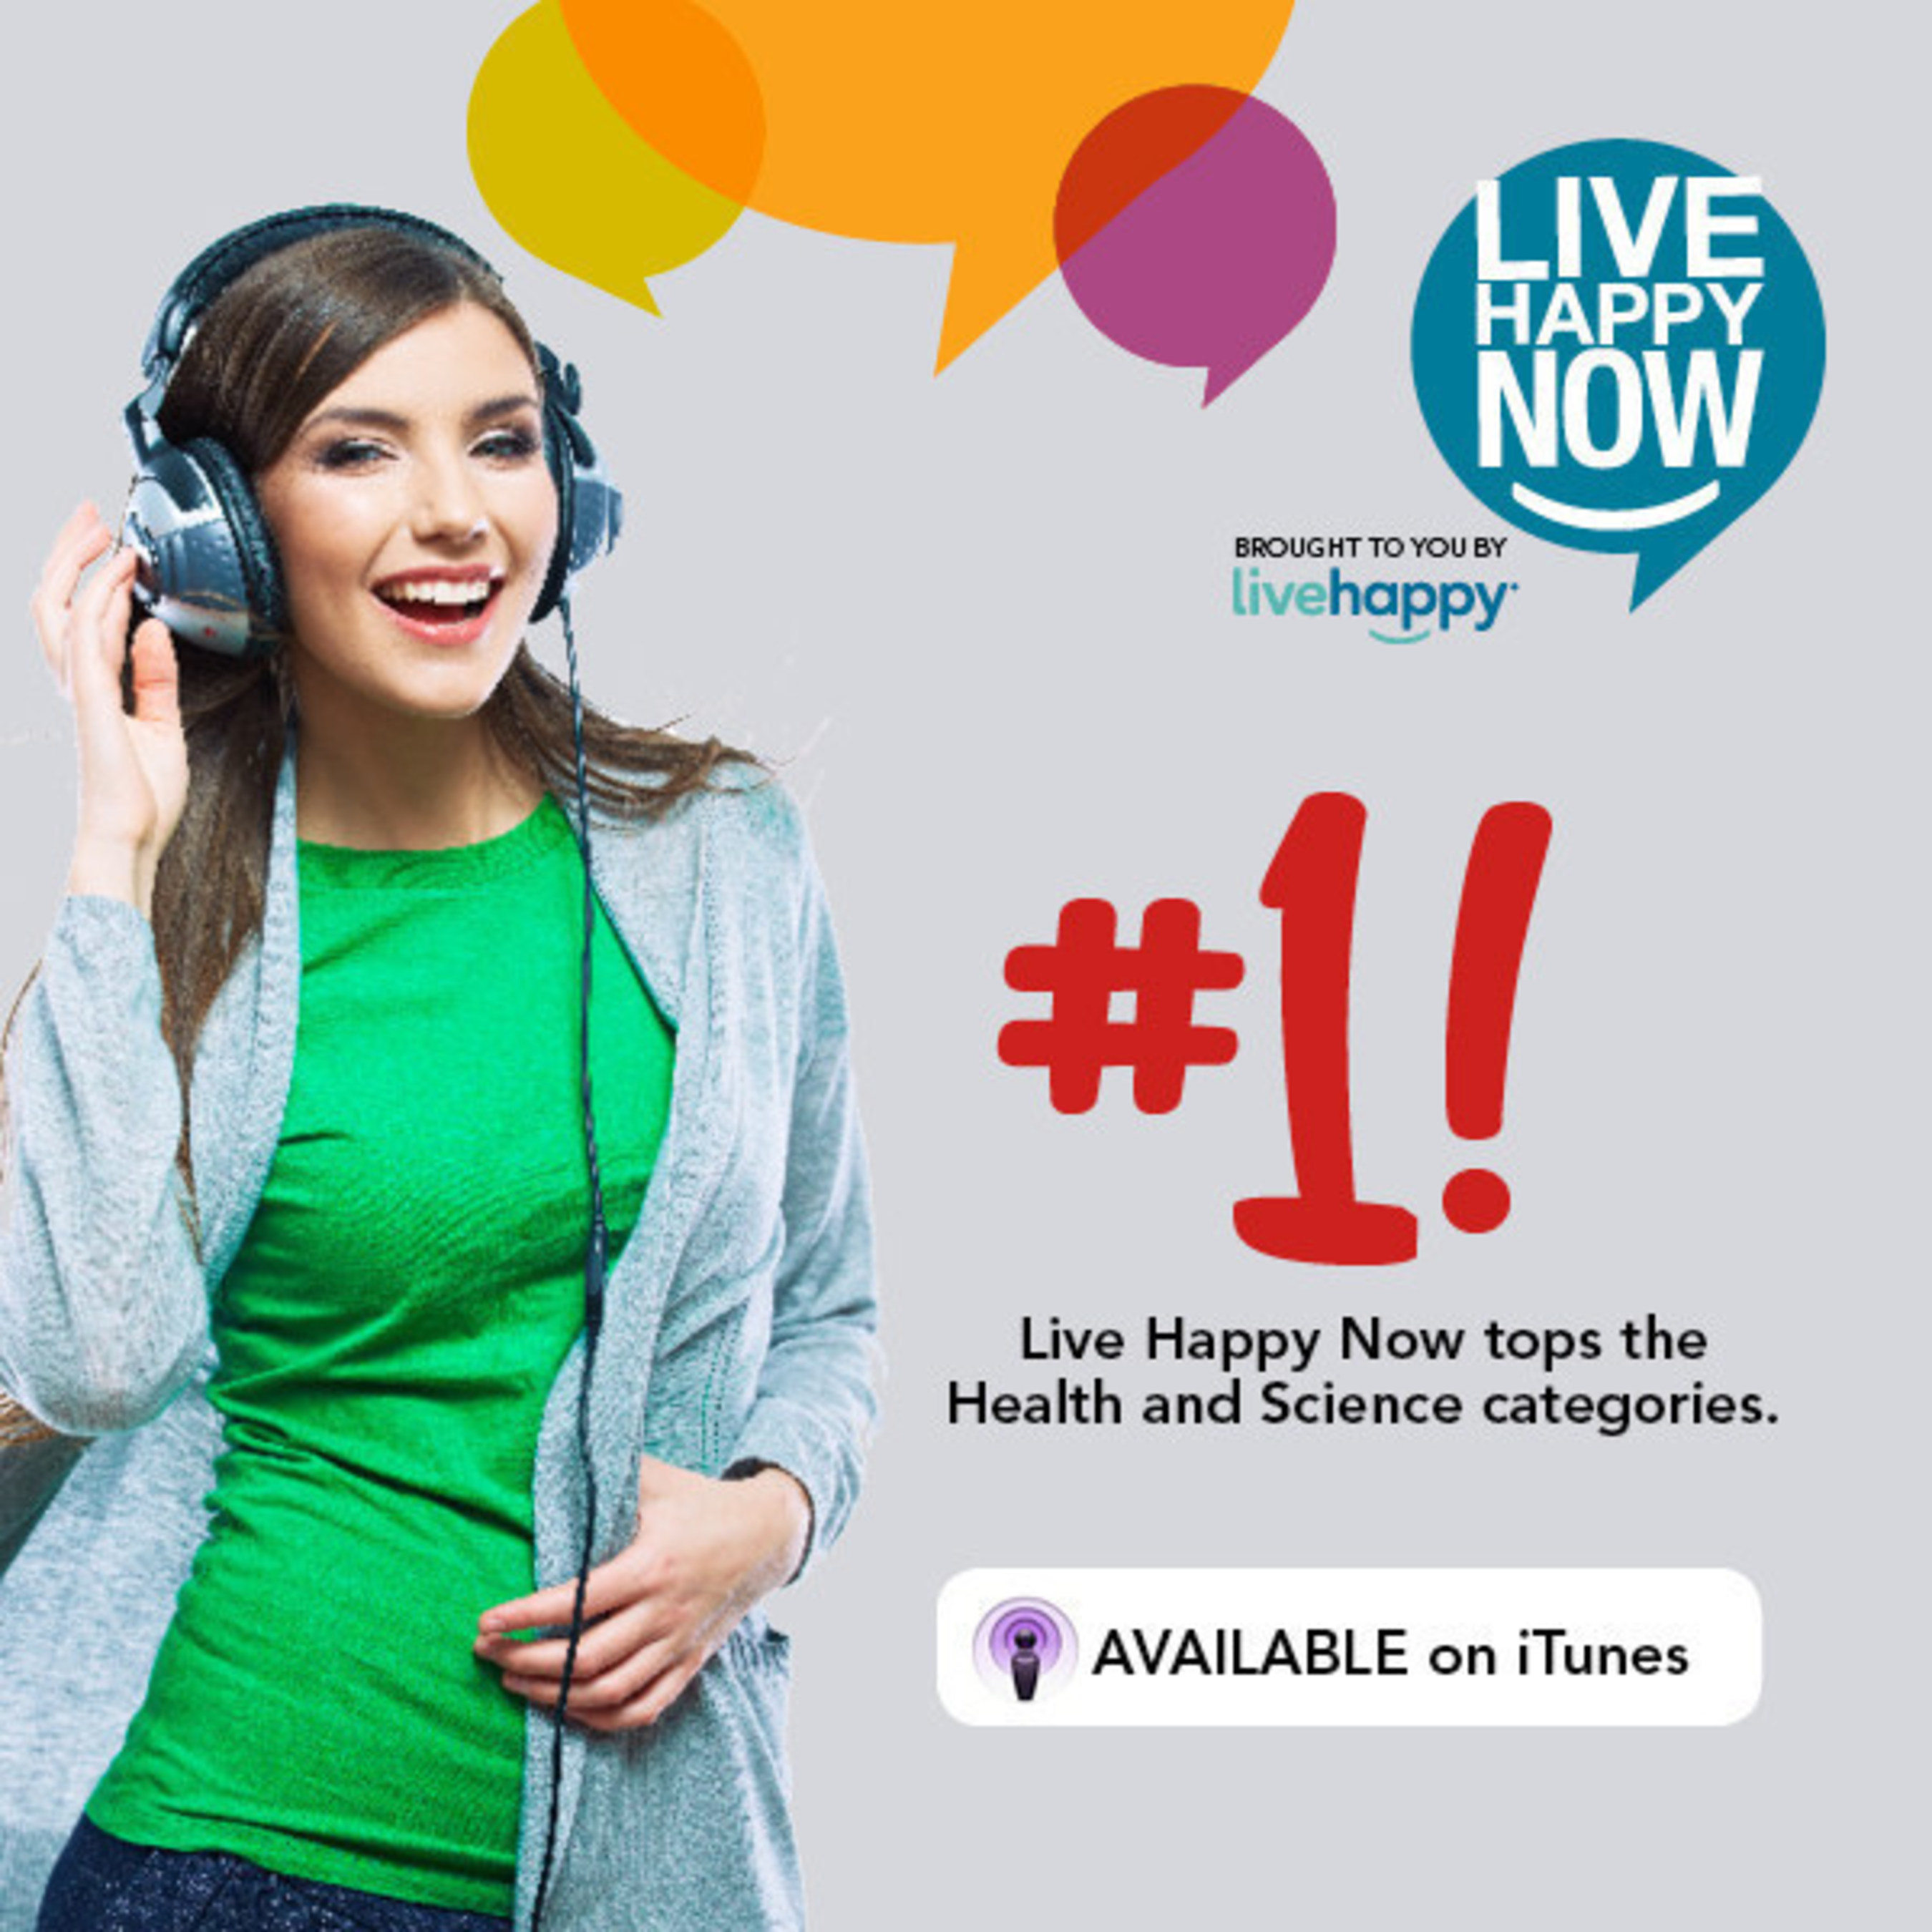 Newly Launched Live Happy Now Podcast Featured on iTunes 'New and Noteworthy' Page